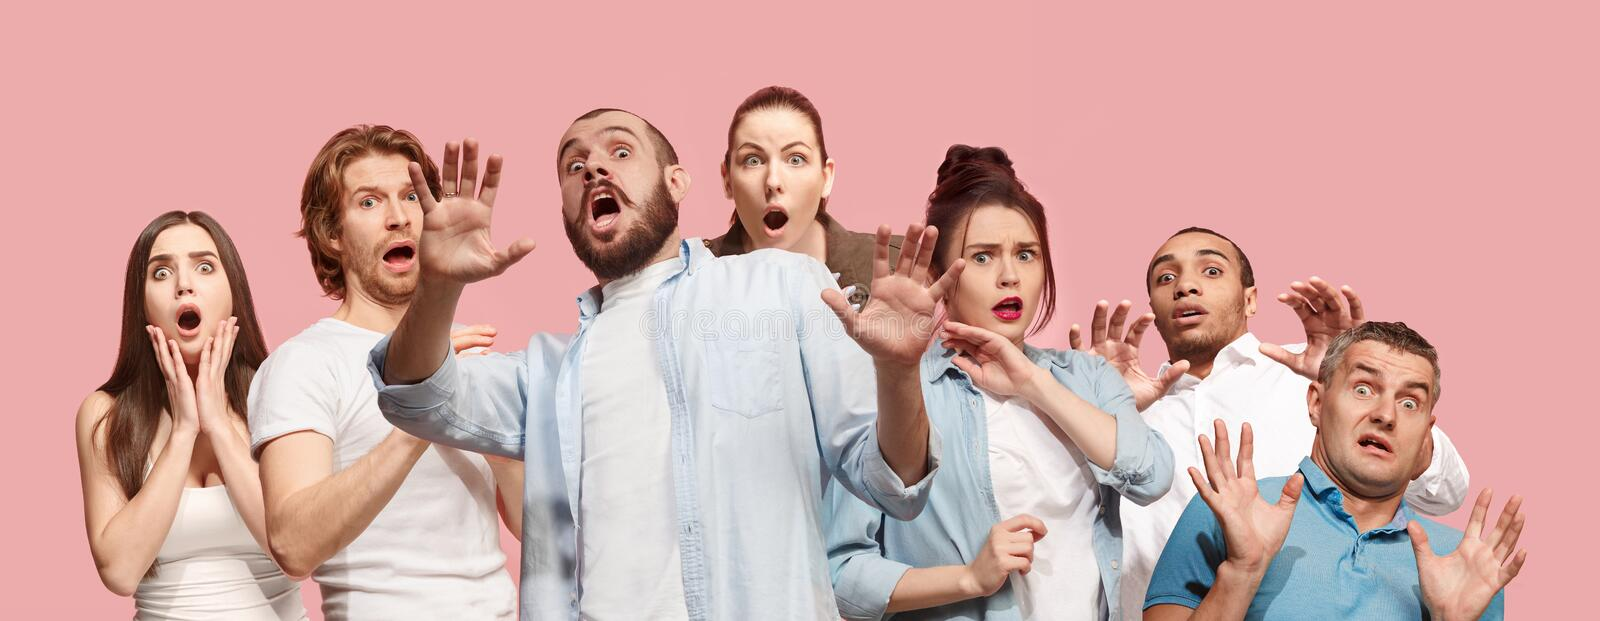 Group of frightened people, woman and man stressful keeping hands on head, terrified in panic, shouting royalty free stock image